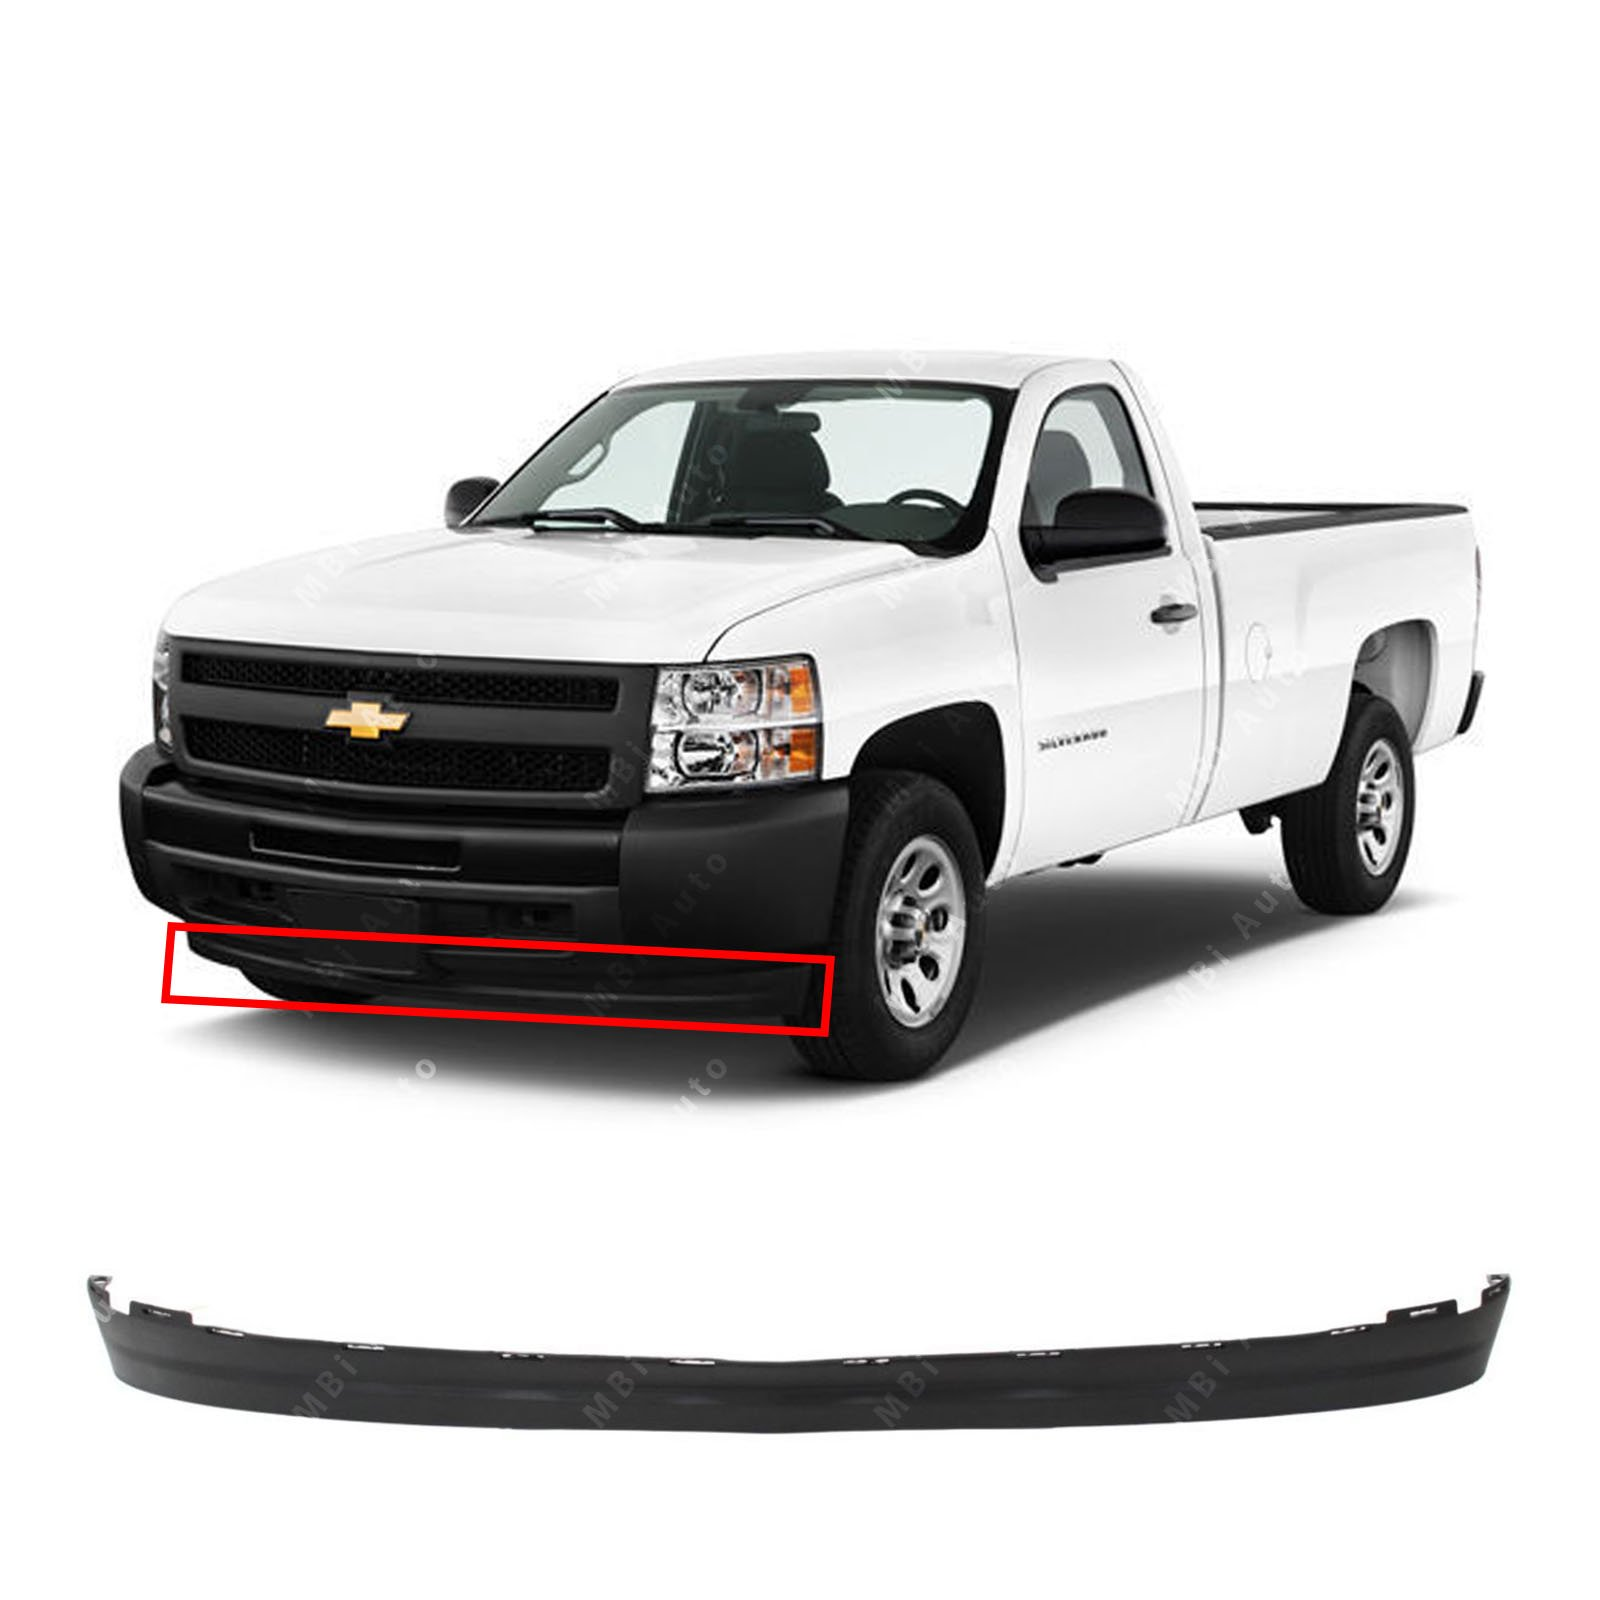 MBI AUTO - Textured, Bumper Lower Valance Air Deflector for 2007-2013 Chevy Silverado 1500 Pickup 07-13, GM1092191